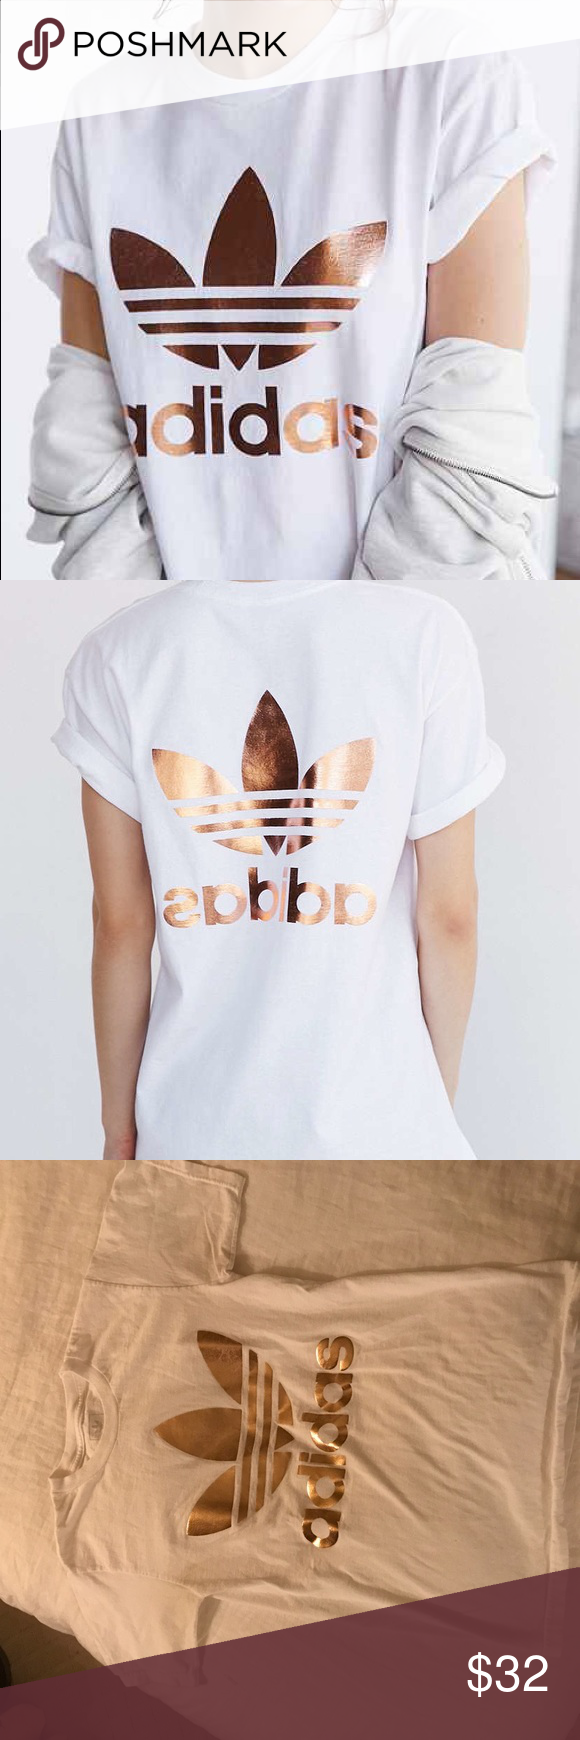 31c491f22c6 Rose Gold Adidas Trefoil T-shirt Adidas rose gold double sided t shirt,  size XS. worn a few times, so signs of wash and wear (including slight  fading of the ...